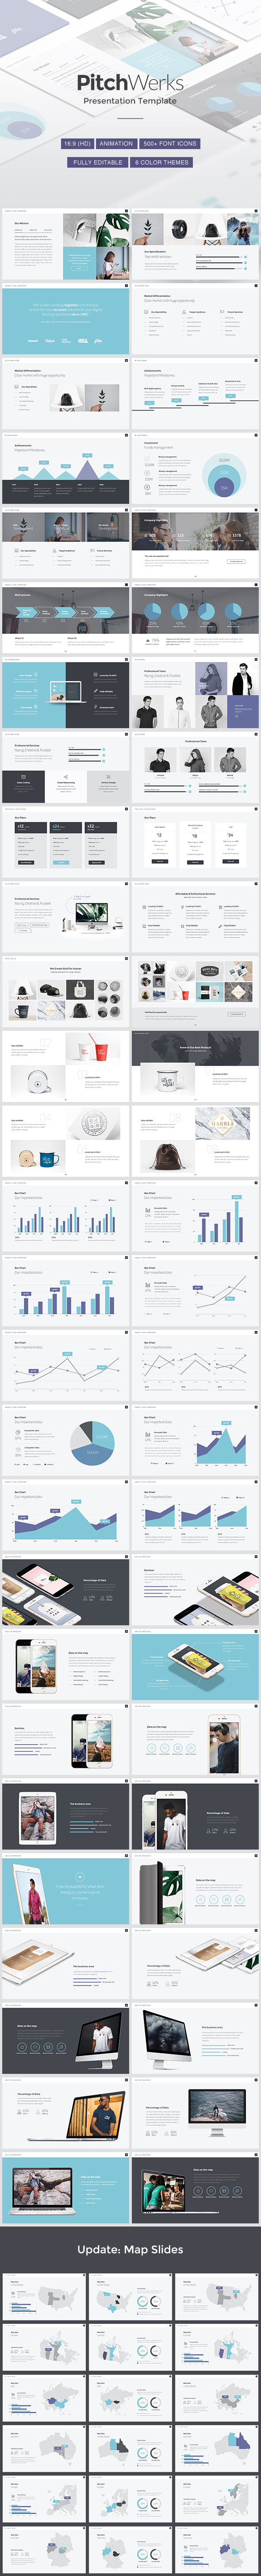 Professional Pitch Powerpoint Template - PowerPoint Templates Presentation Templates